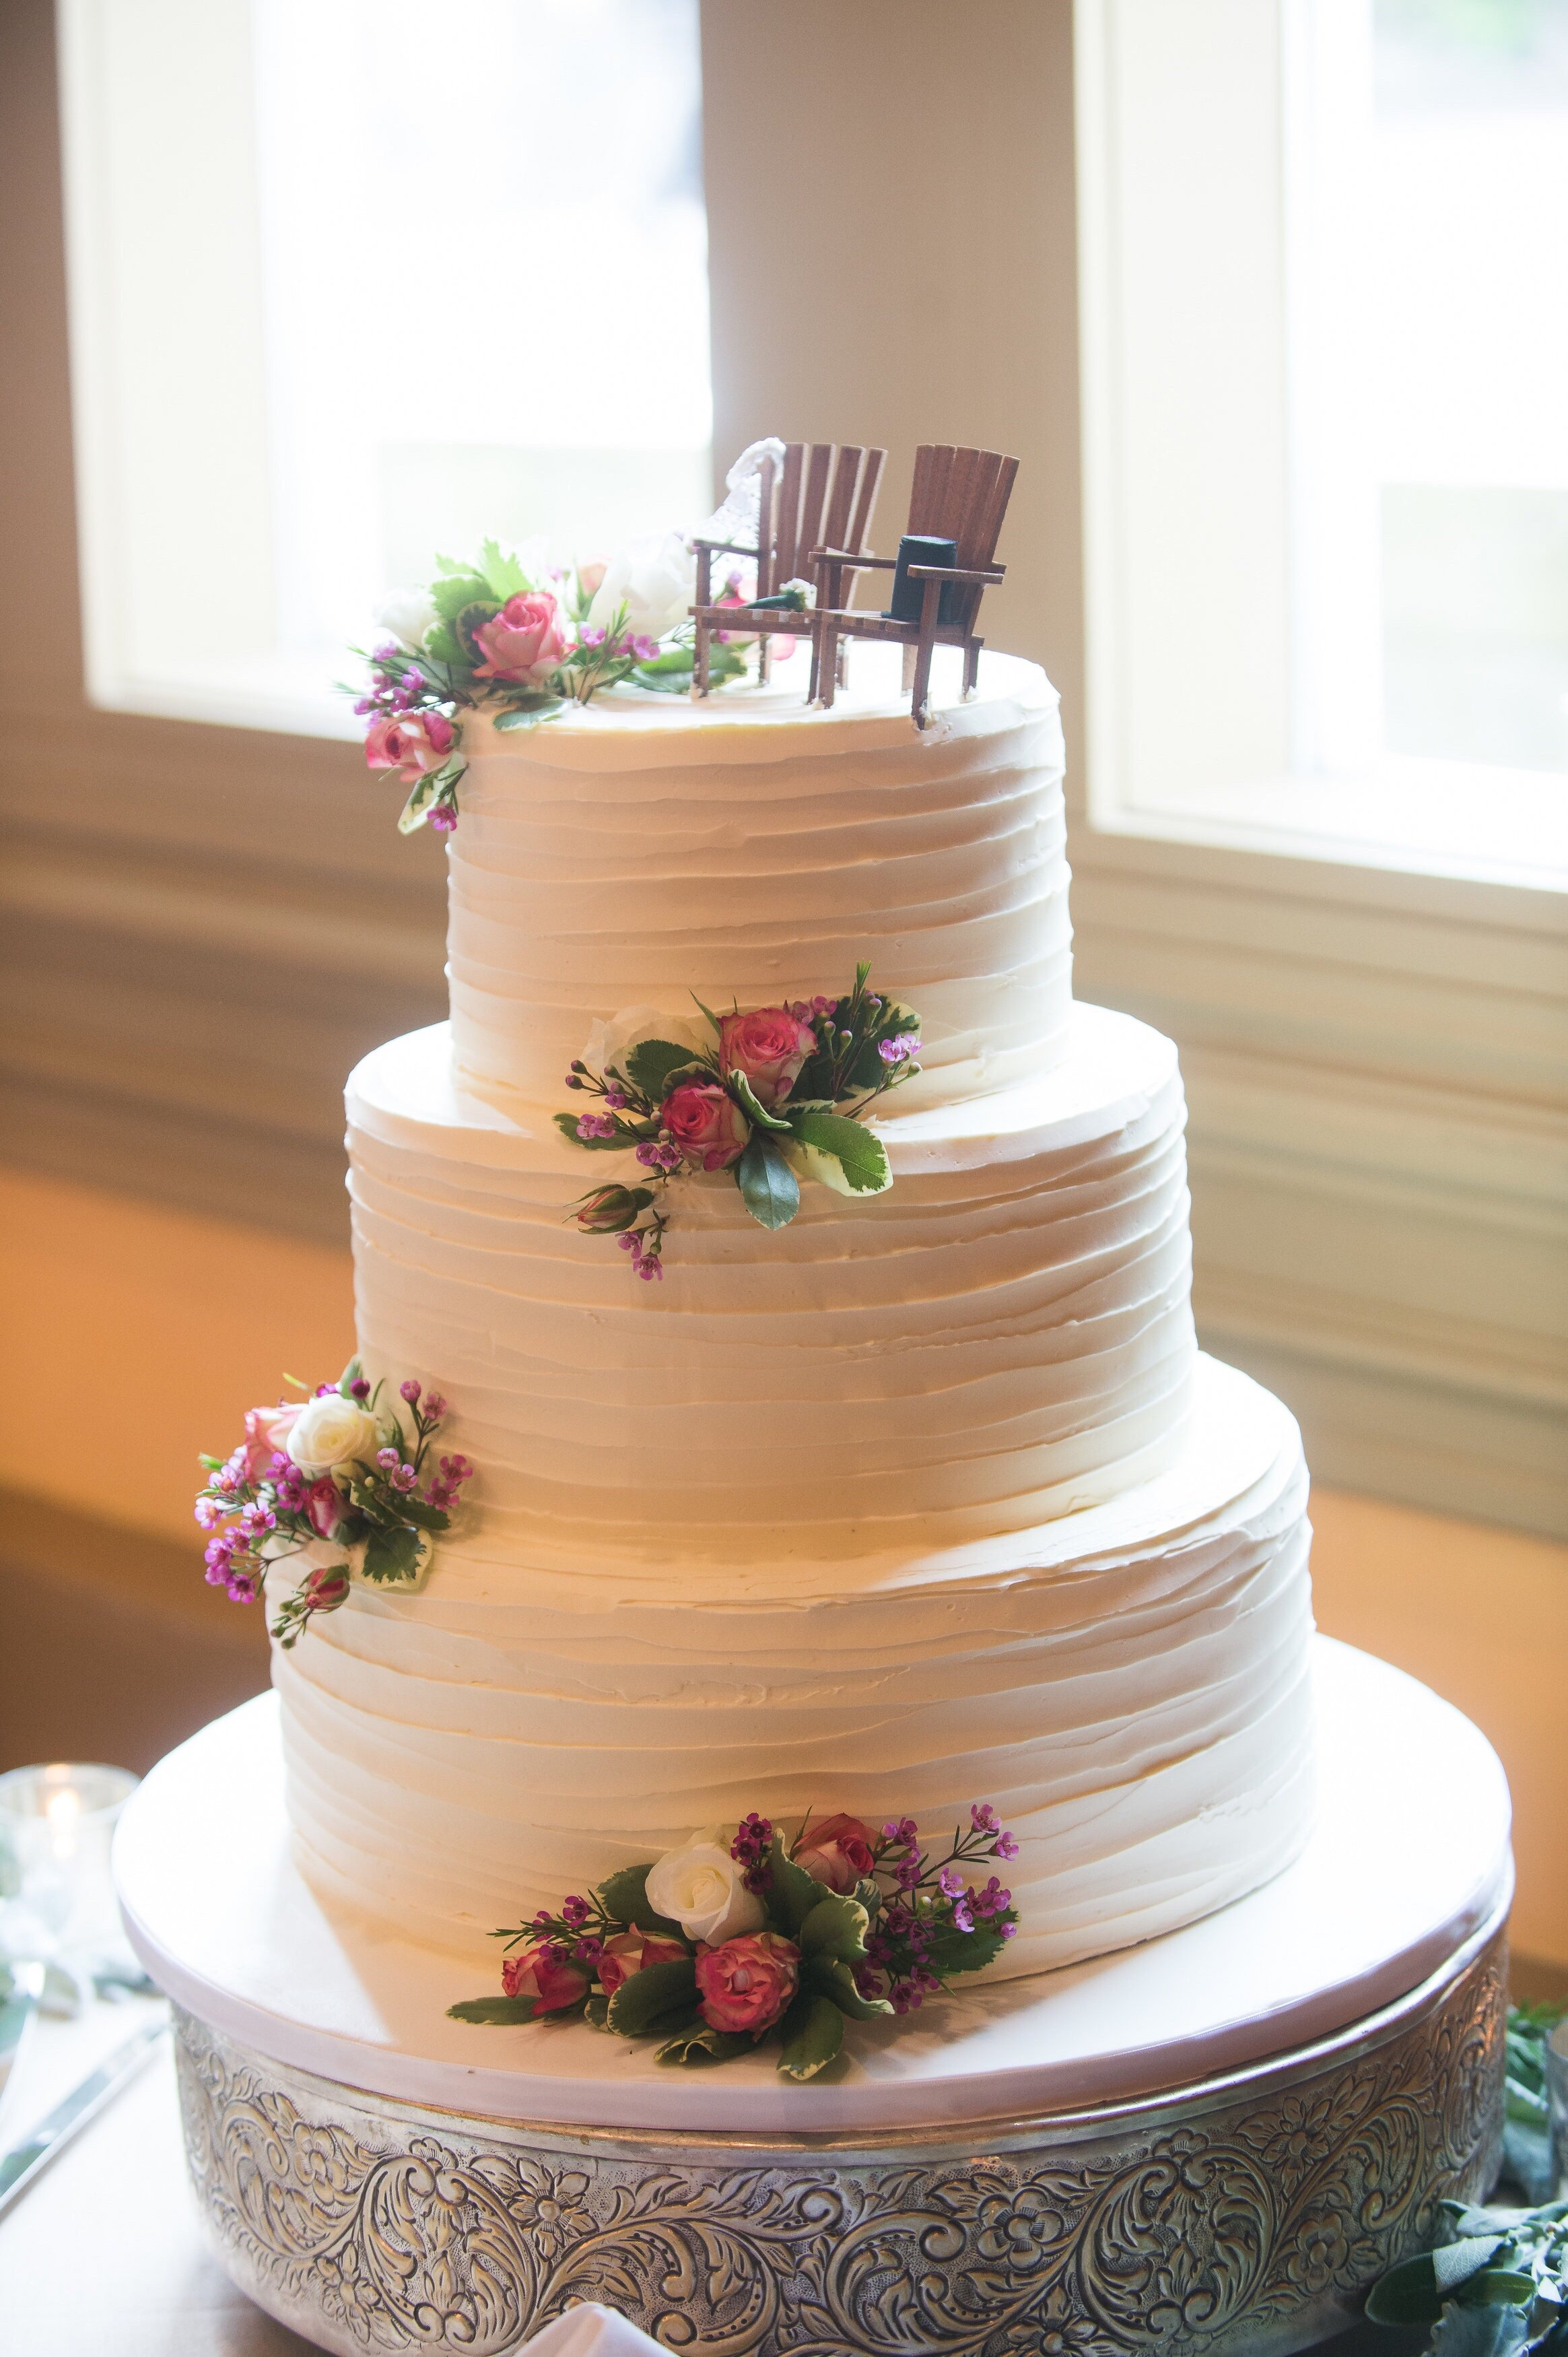 how to design wedding cake the 15 common cake designs names so you what to ask for 15706